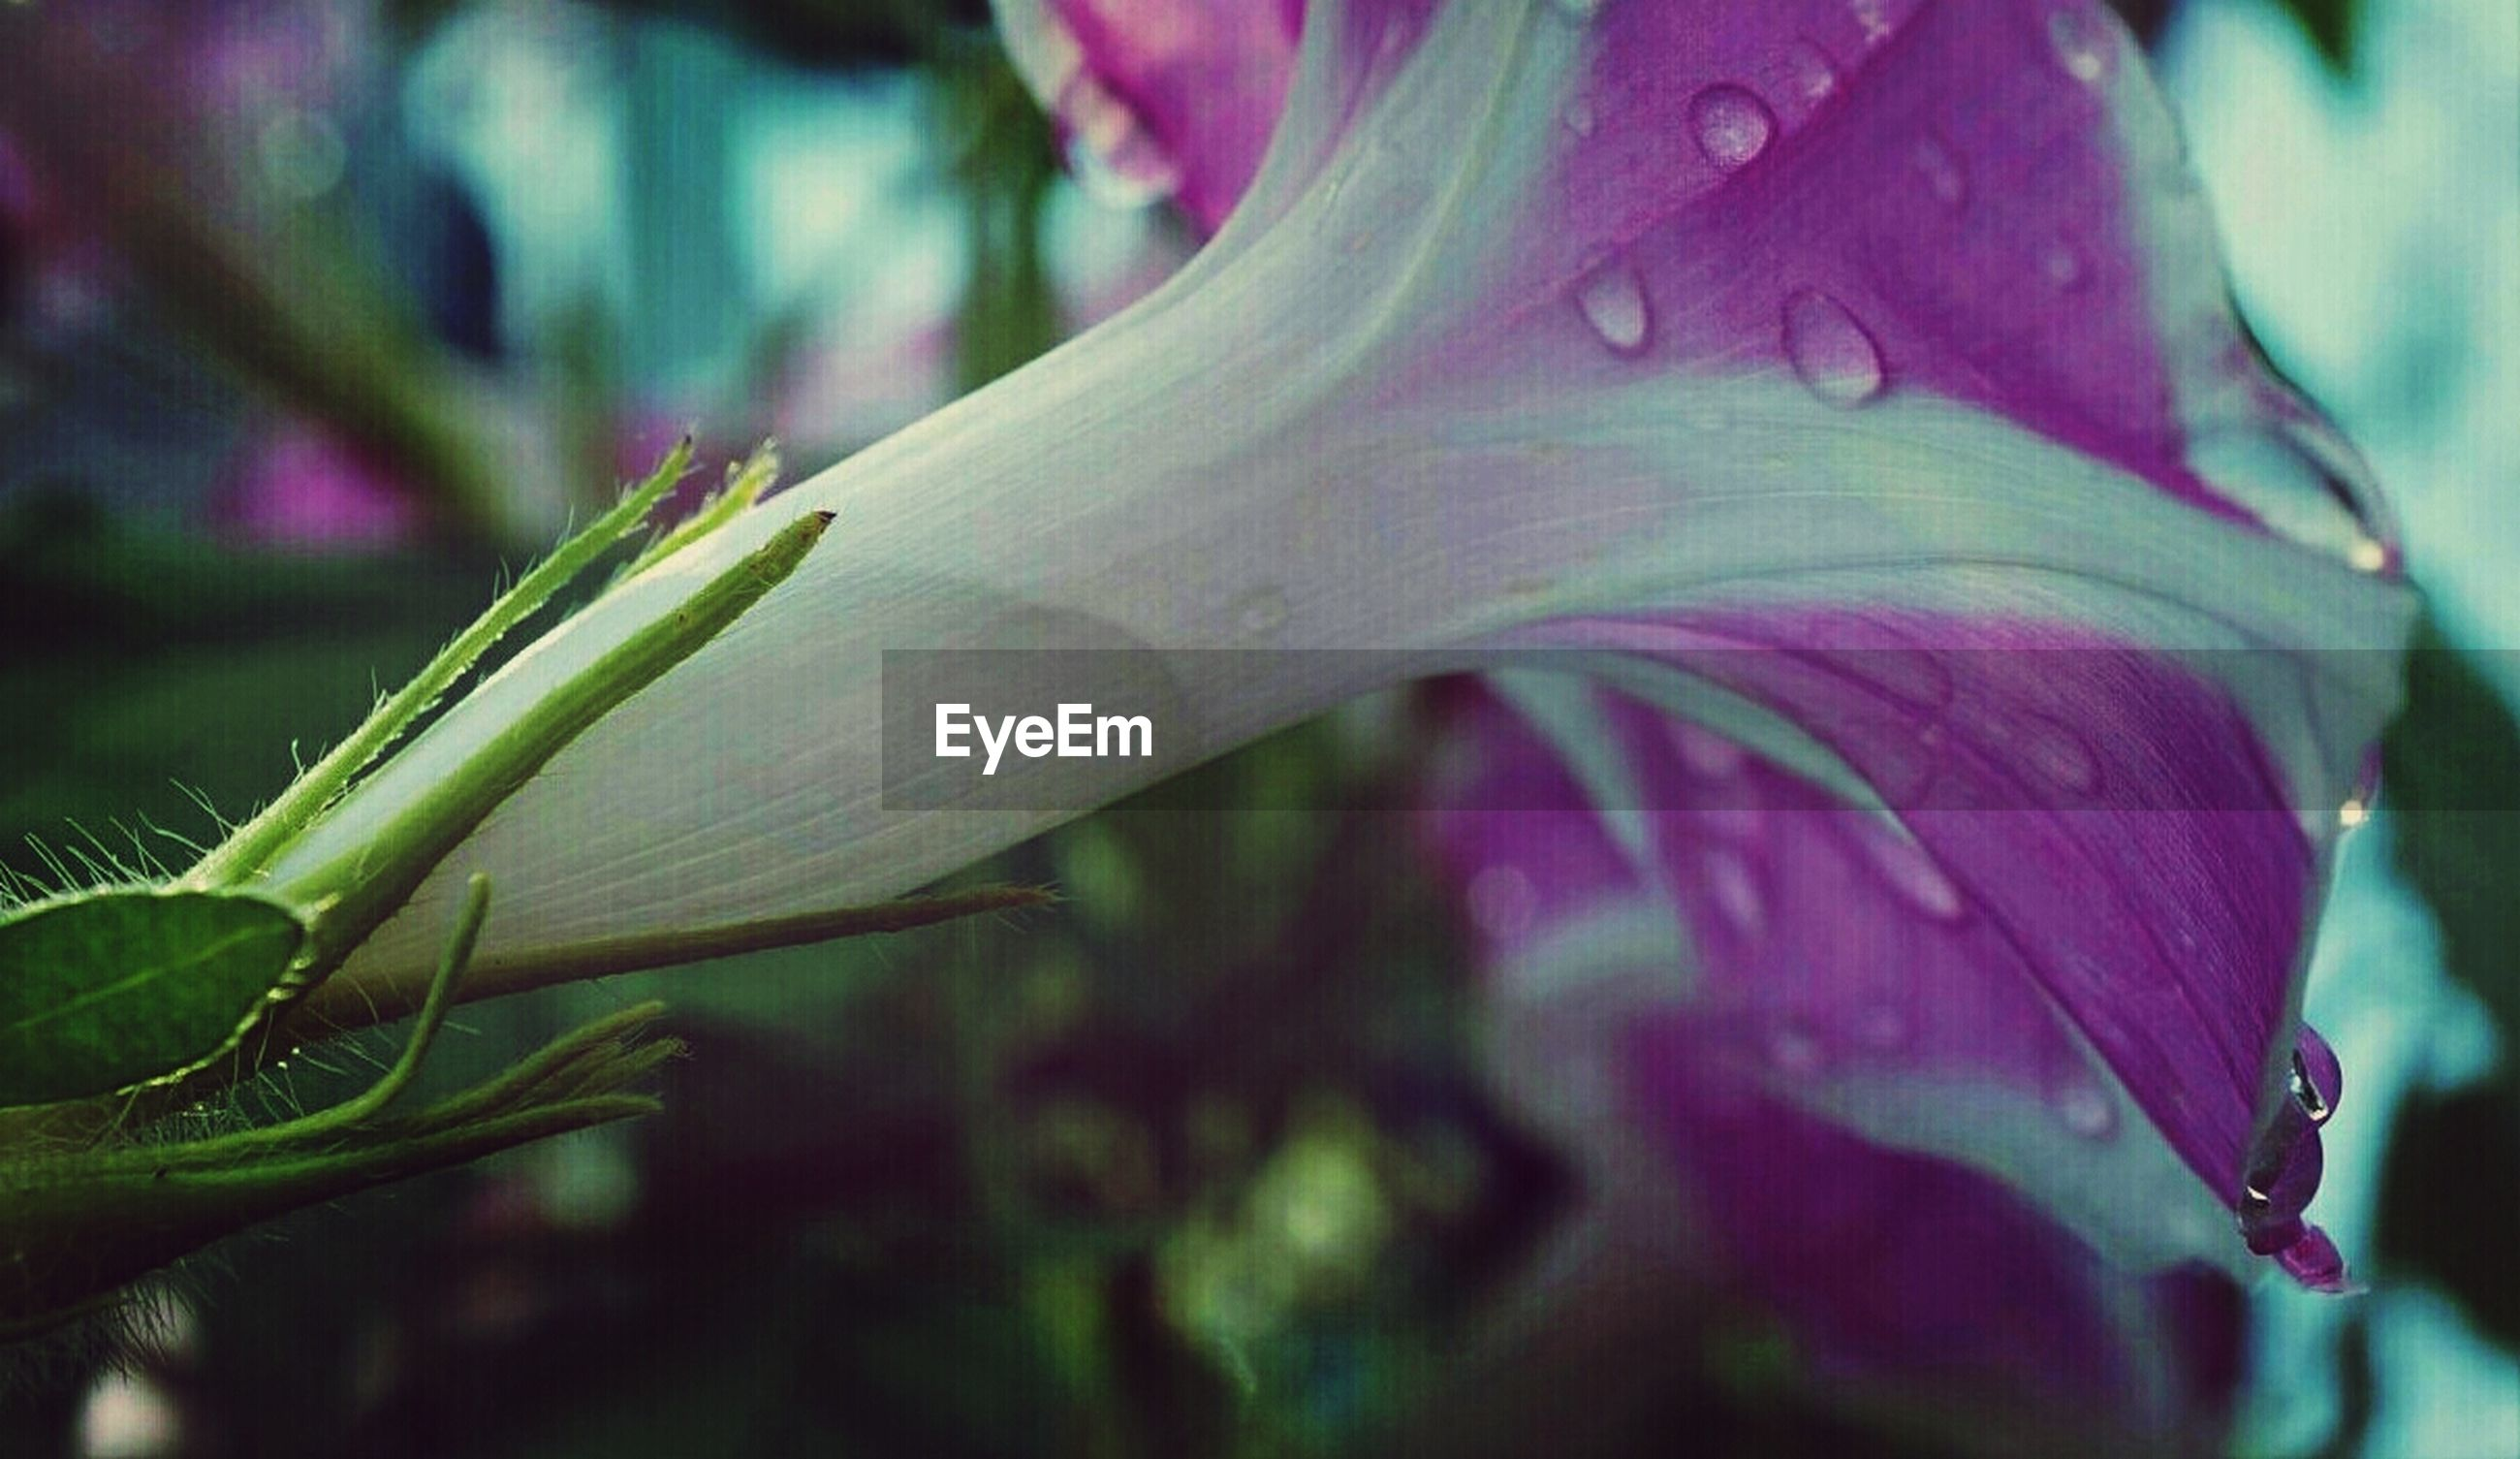 flower, close-up, growth, fragility, freshness, focus on foreground, plant, beauty in nature, petal, nature, selective focus, bud, leaf, stem, green color, flower head, outdoors, day, no people, insect